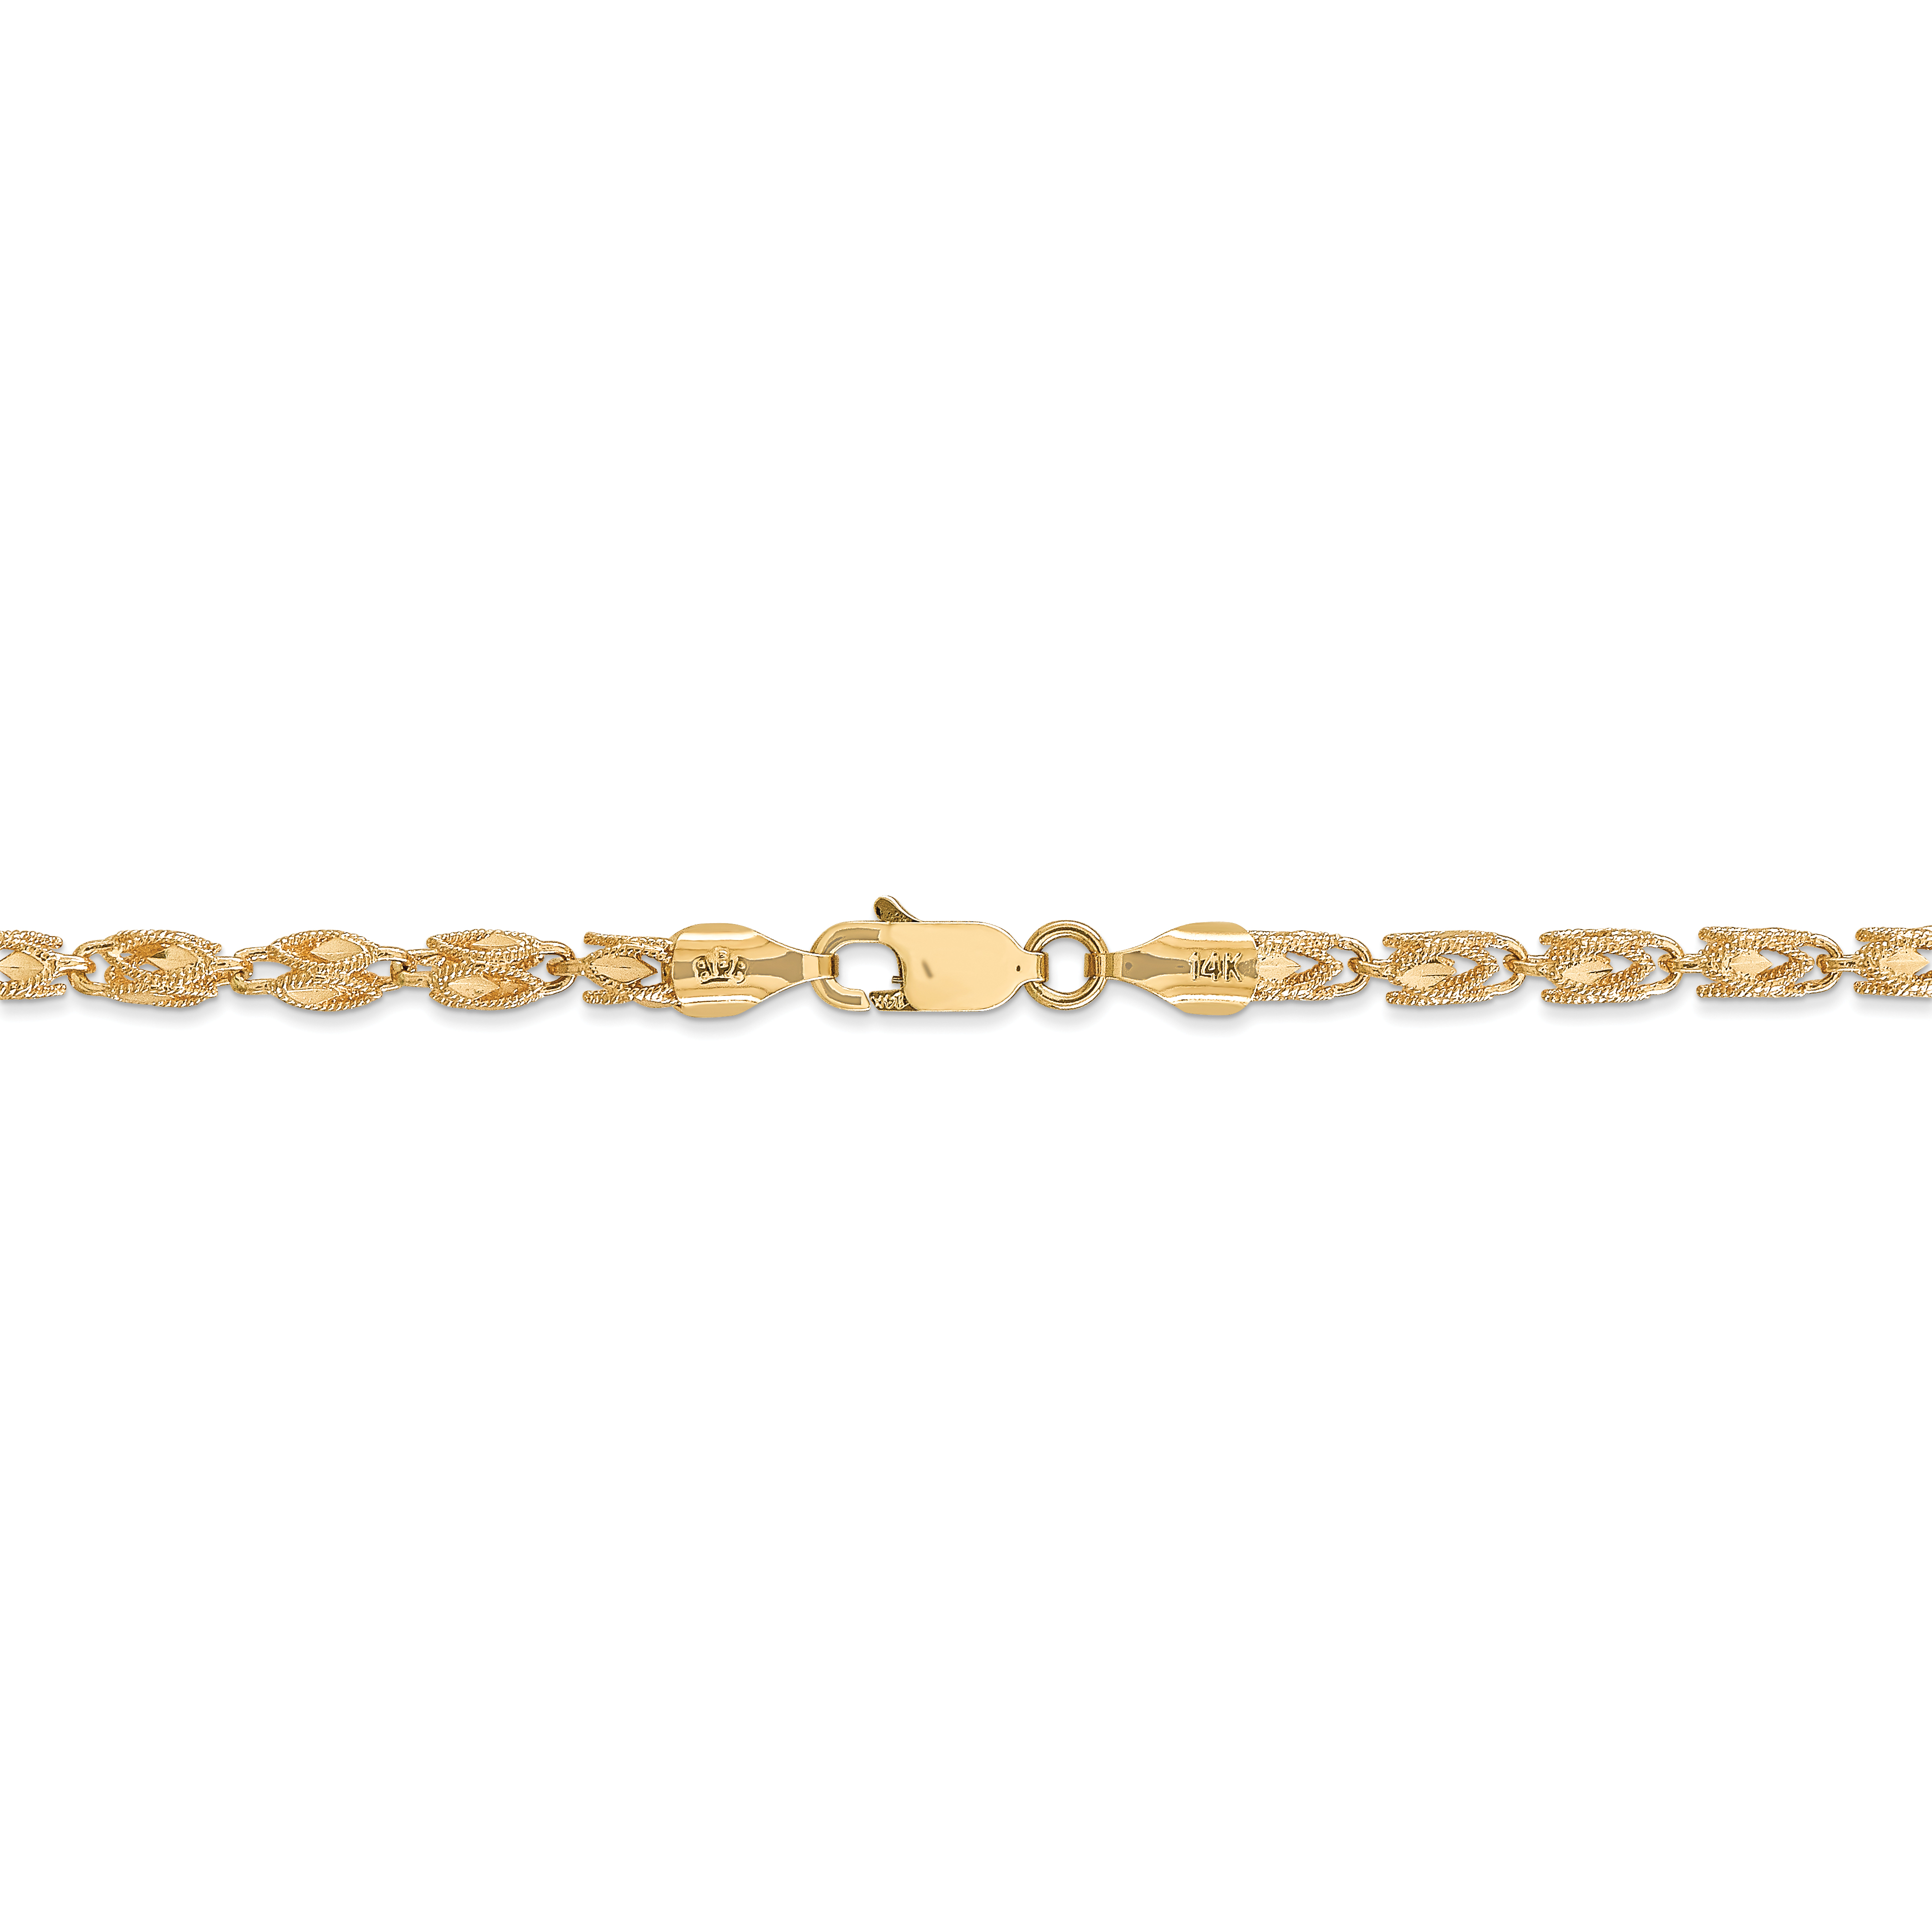 14k Yellow Gold 3.5mm Marquise Chain Necklace 18 Inch Pendant Charm Fine Jewelry Gifts For Women For Her - image 2 of 5